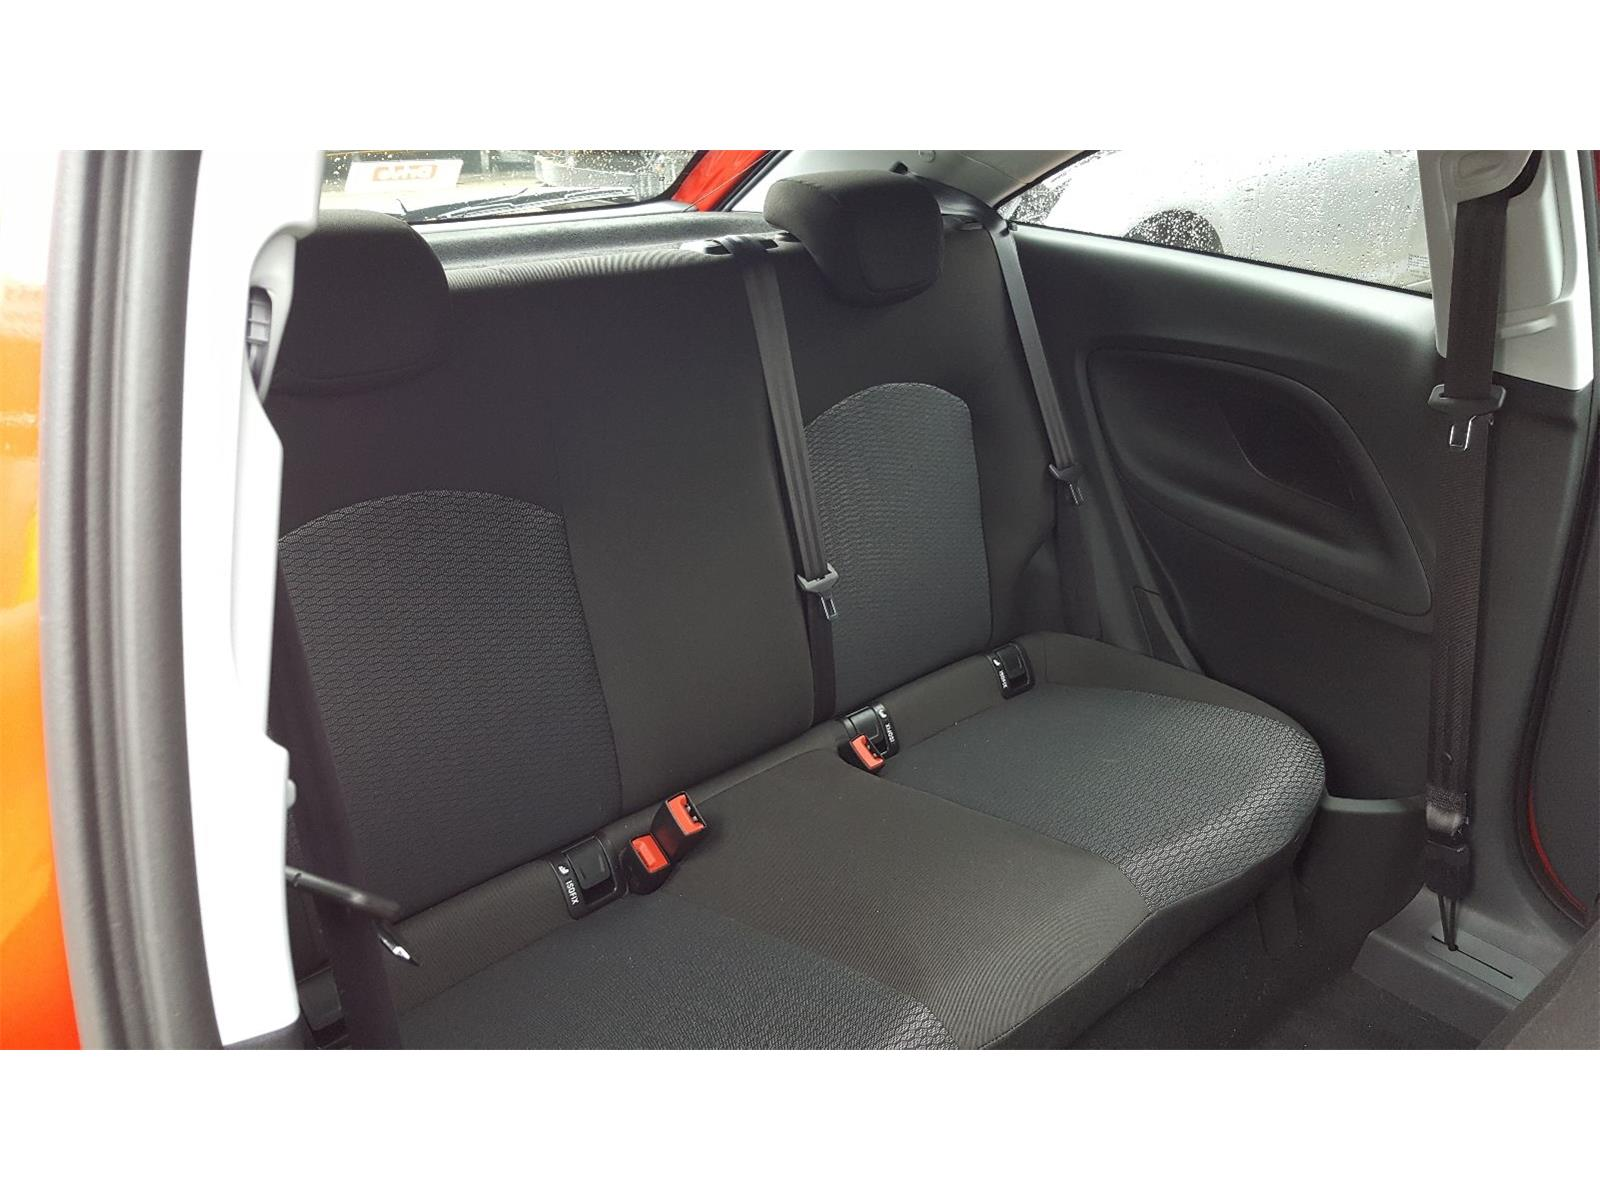 Vauxhall Corsa 2014 On Energy A/C VVT 3 Door Hatchback